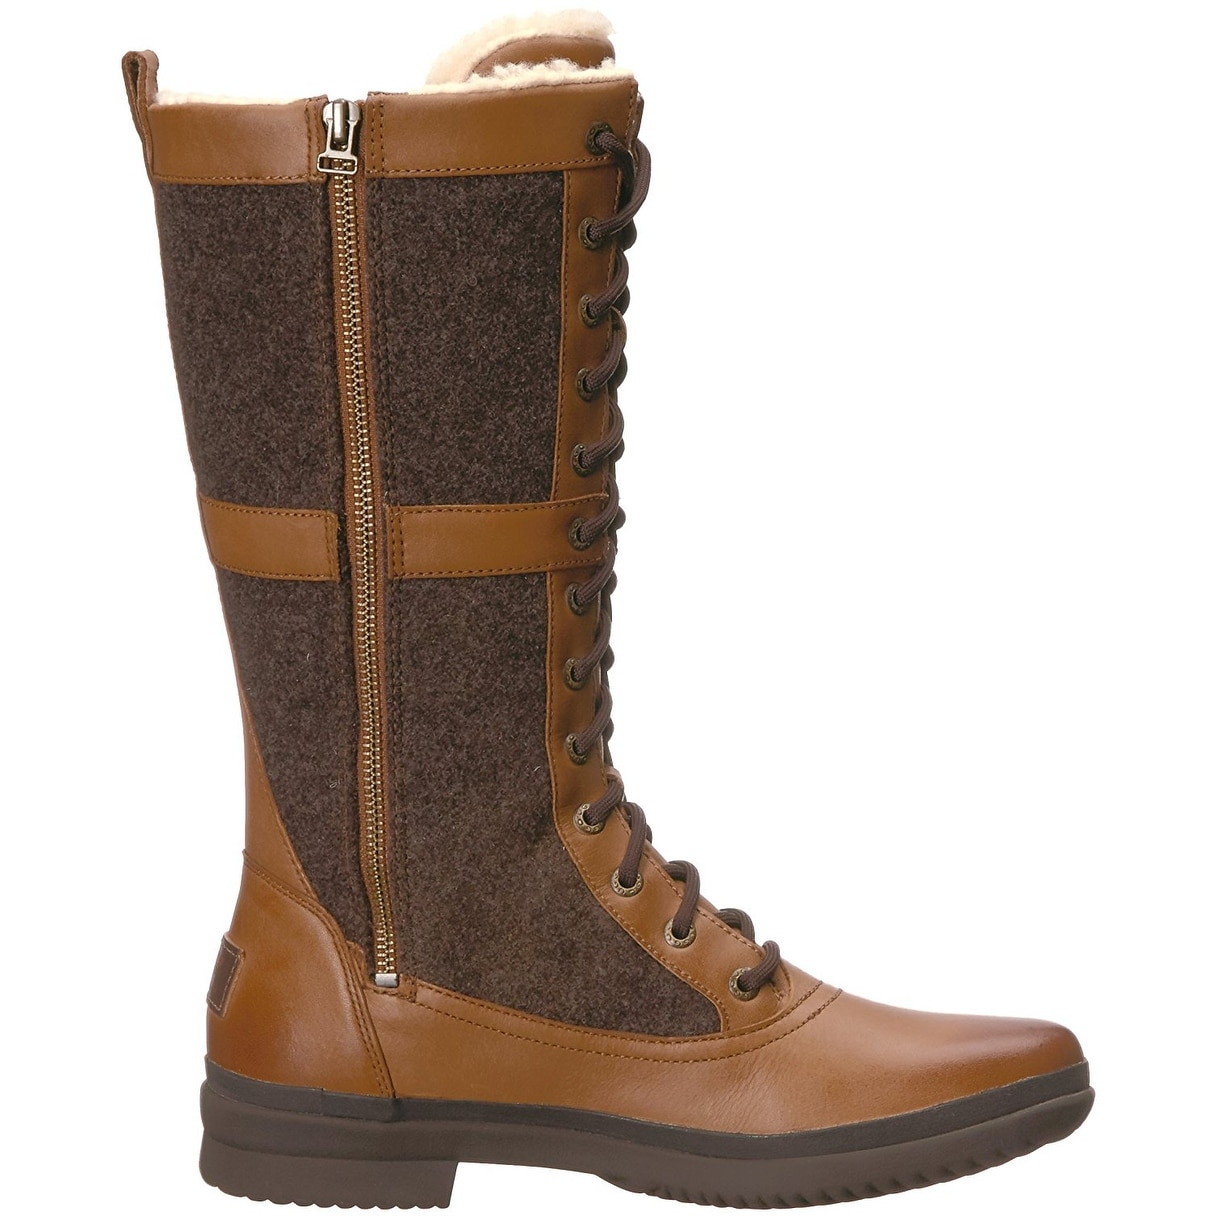 c101734470a Ugg Womens Elvia Leather Round Toe Mid-Calf Cold Weather Boots